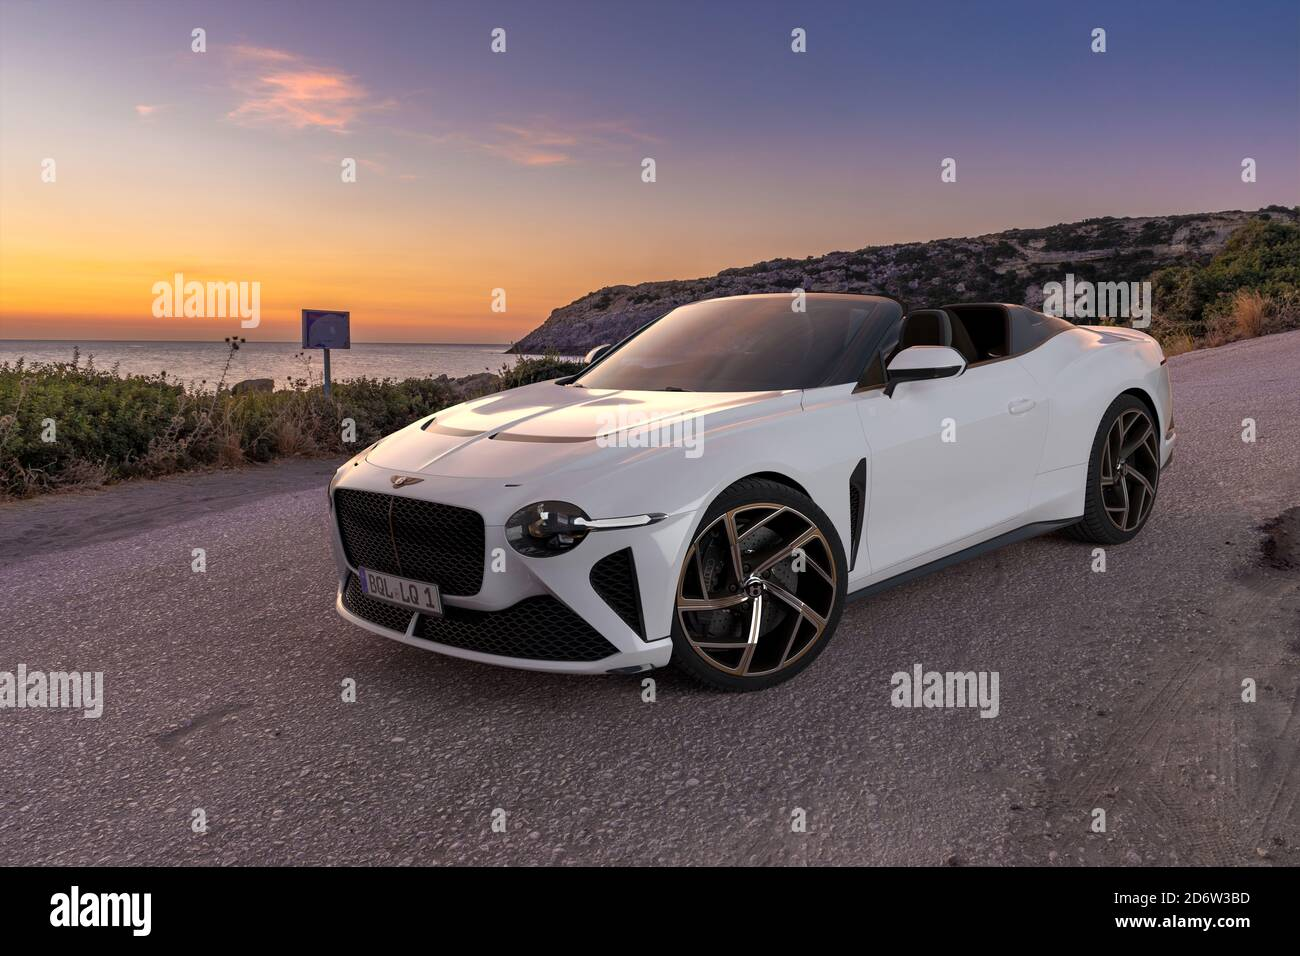 Bentley Mulliner Bacalar The New Super Exclusive Bentley Convertible On The Road At Sunset Stock Photo Alamy